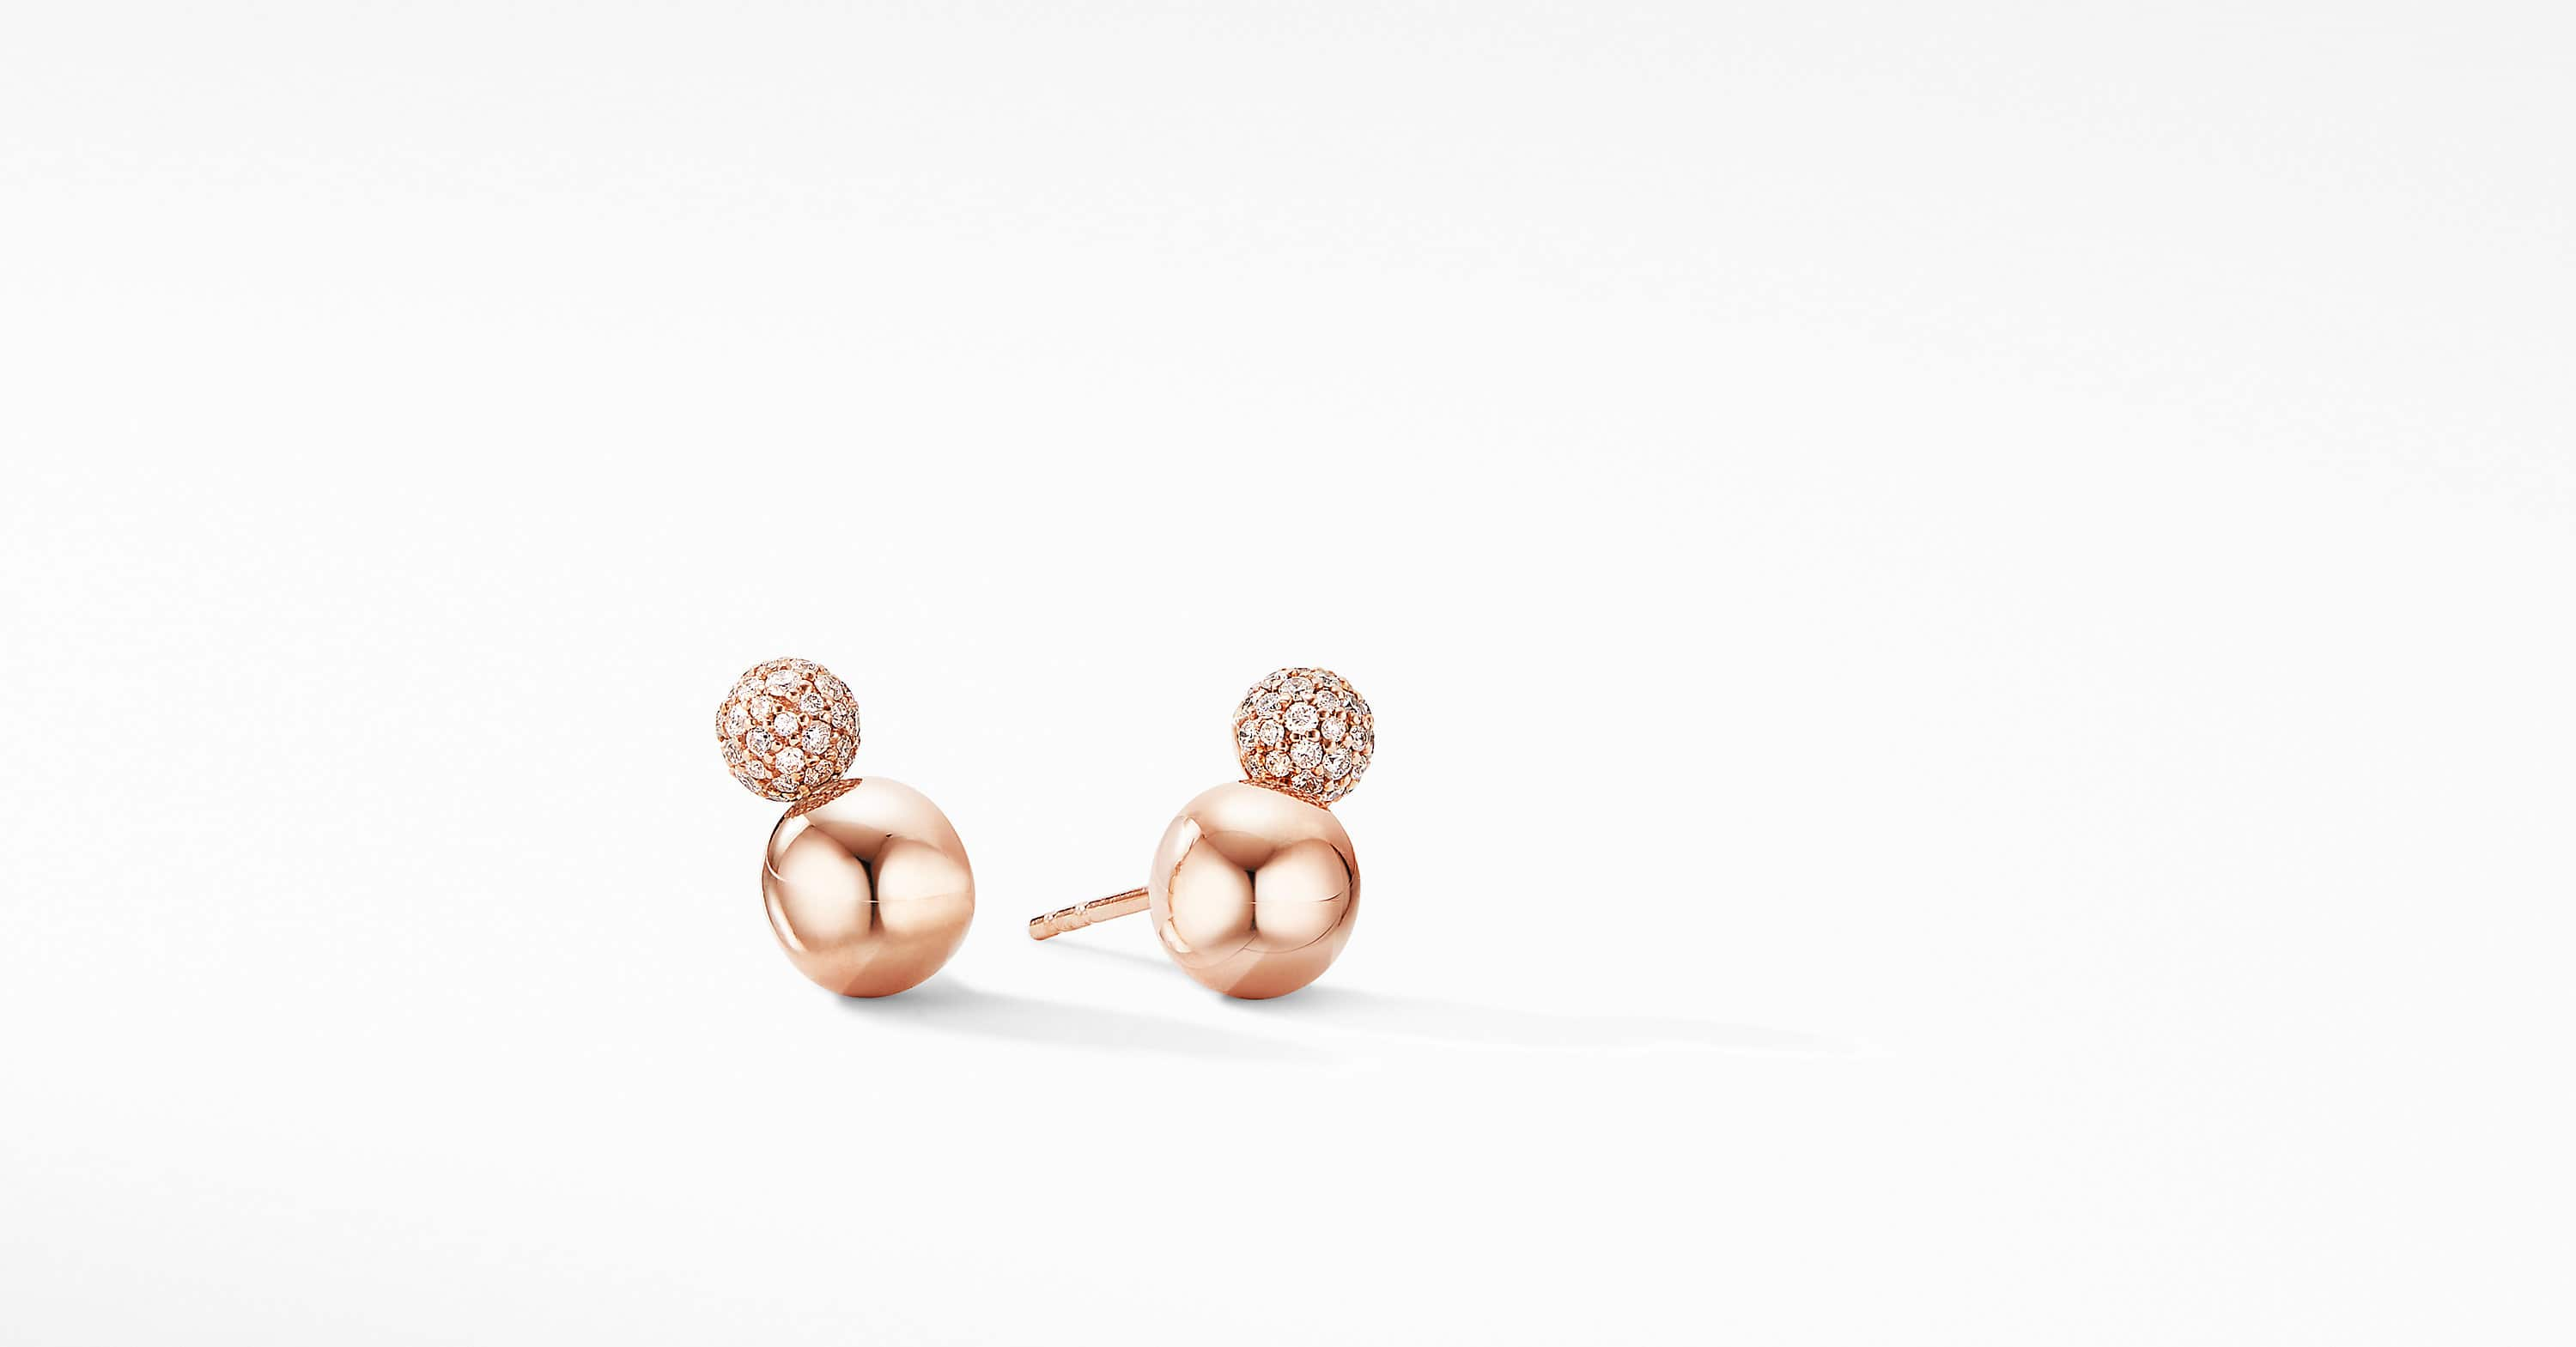 Solari Stud Earrings in 18K Rose Gold with Diamonds